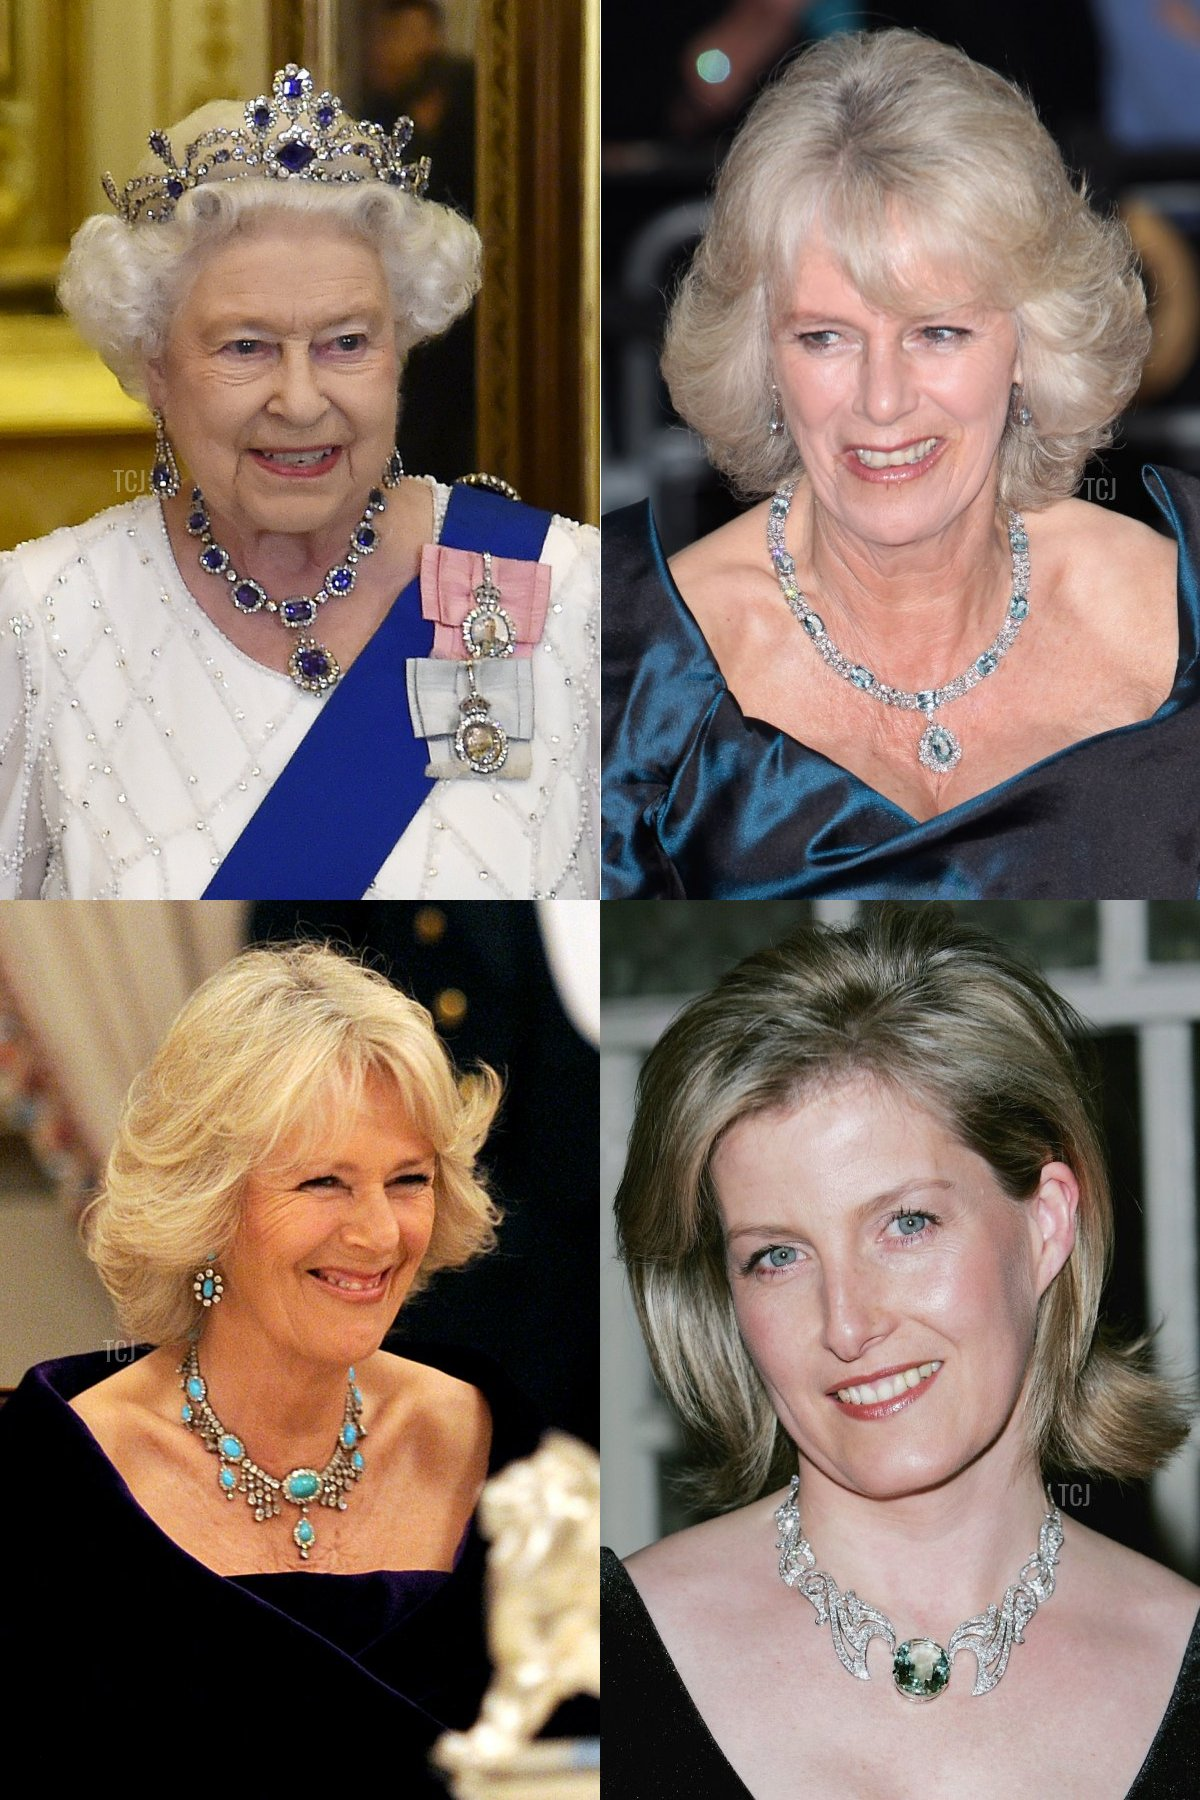 Clockwise (from top L): The George VI Sapphire Necklace, Camilla's Aquamarine Necklace, the Wessex Aquamarine Necklace, and Camilla's Turquoise Necklace